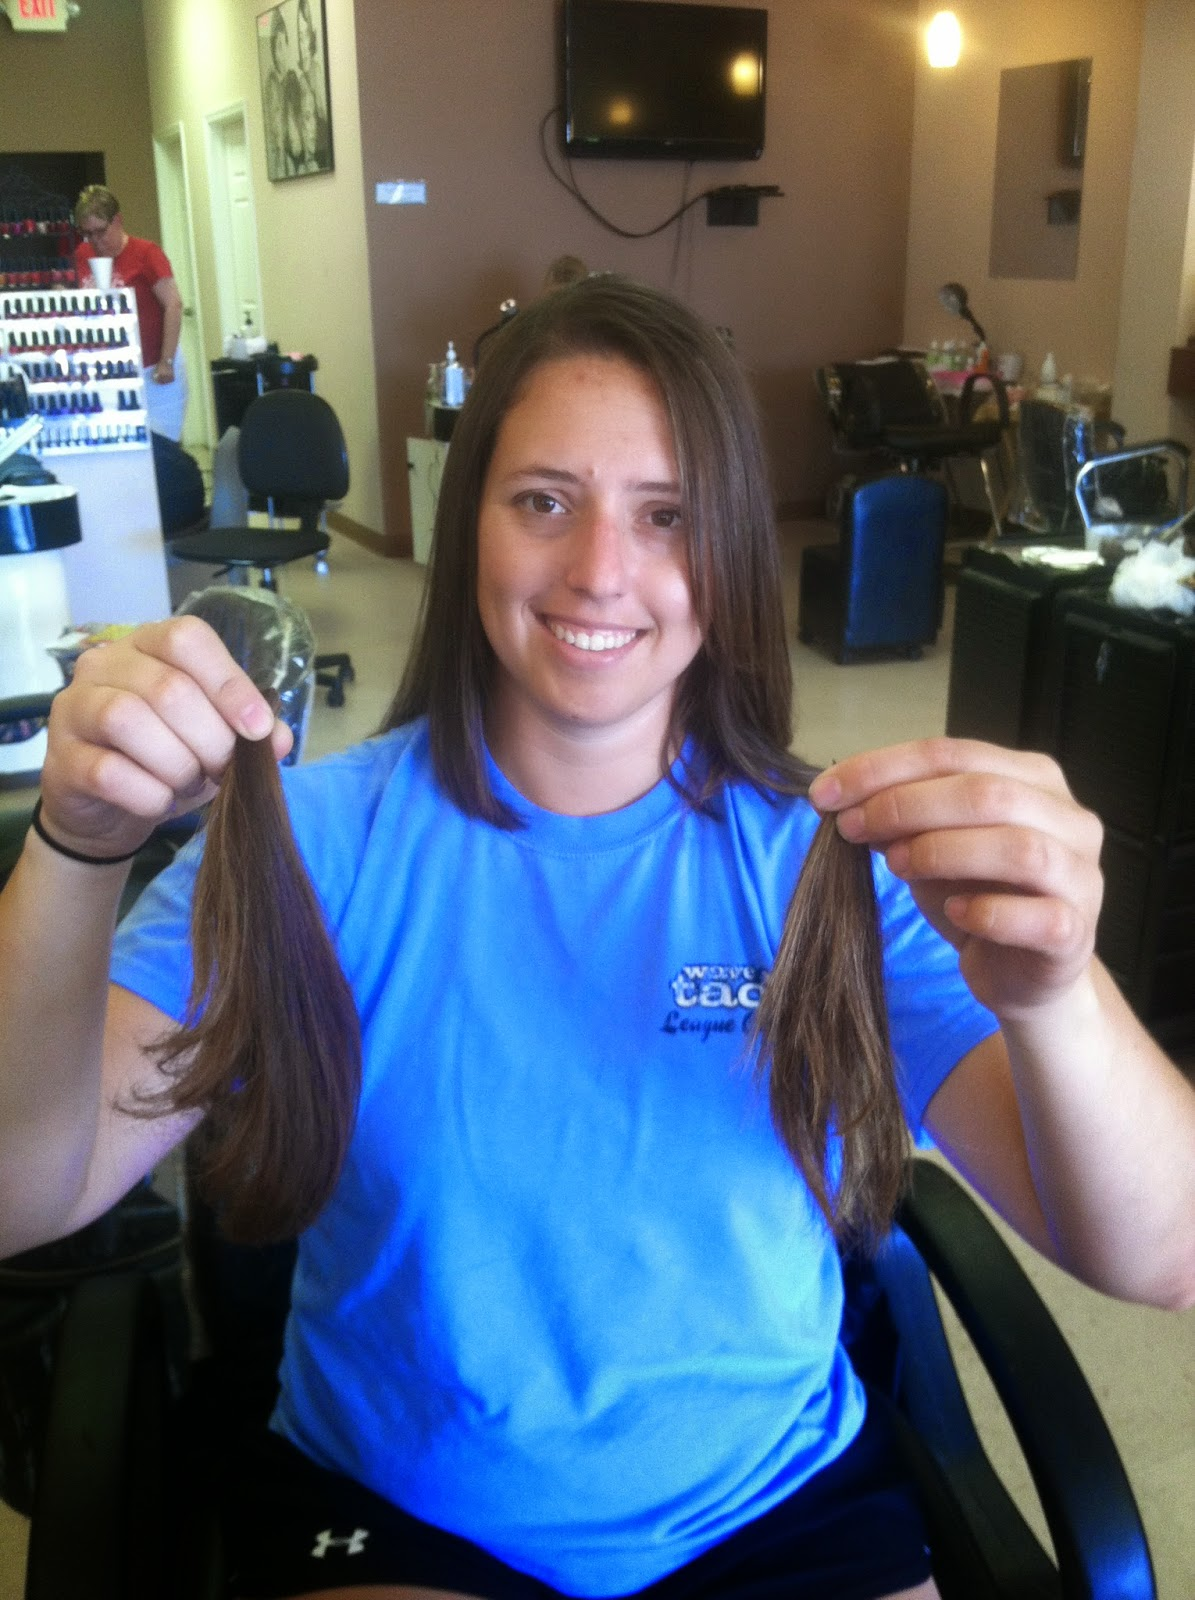 30 things to do before turning 30 2 donate hair to locks of love since my hair was highlighted i was unable to donate a full twelve for a wigbut locks of love is able to sell the human hair to make money pmusecretfo Image collections